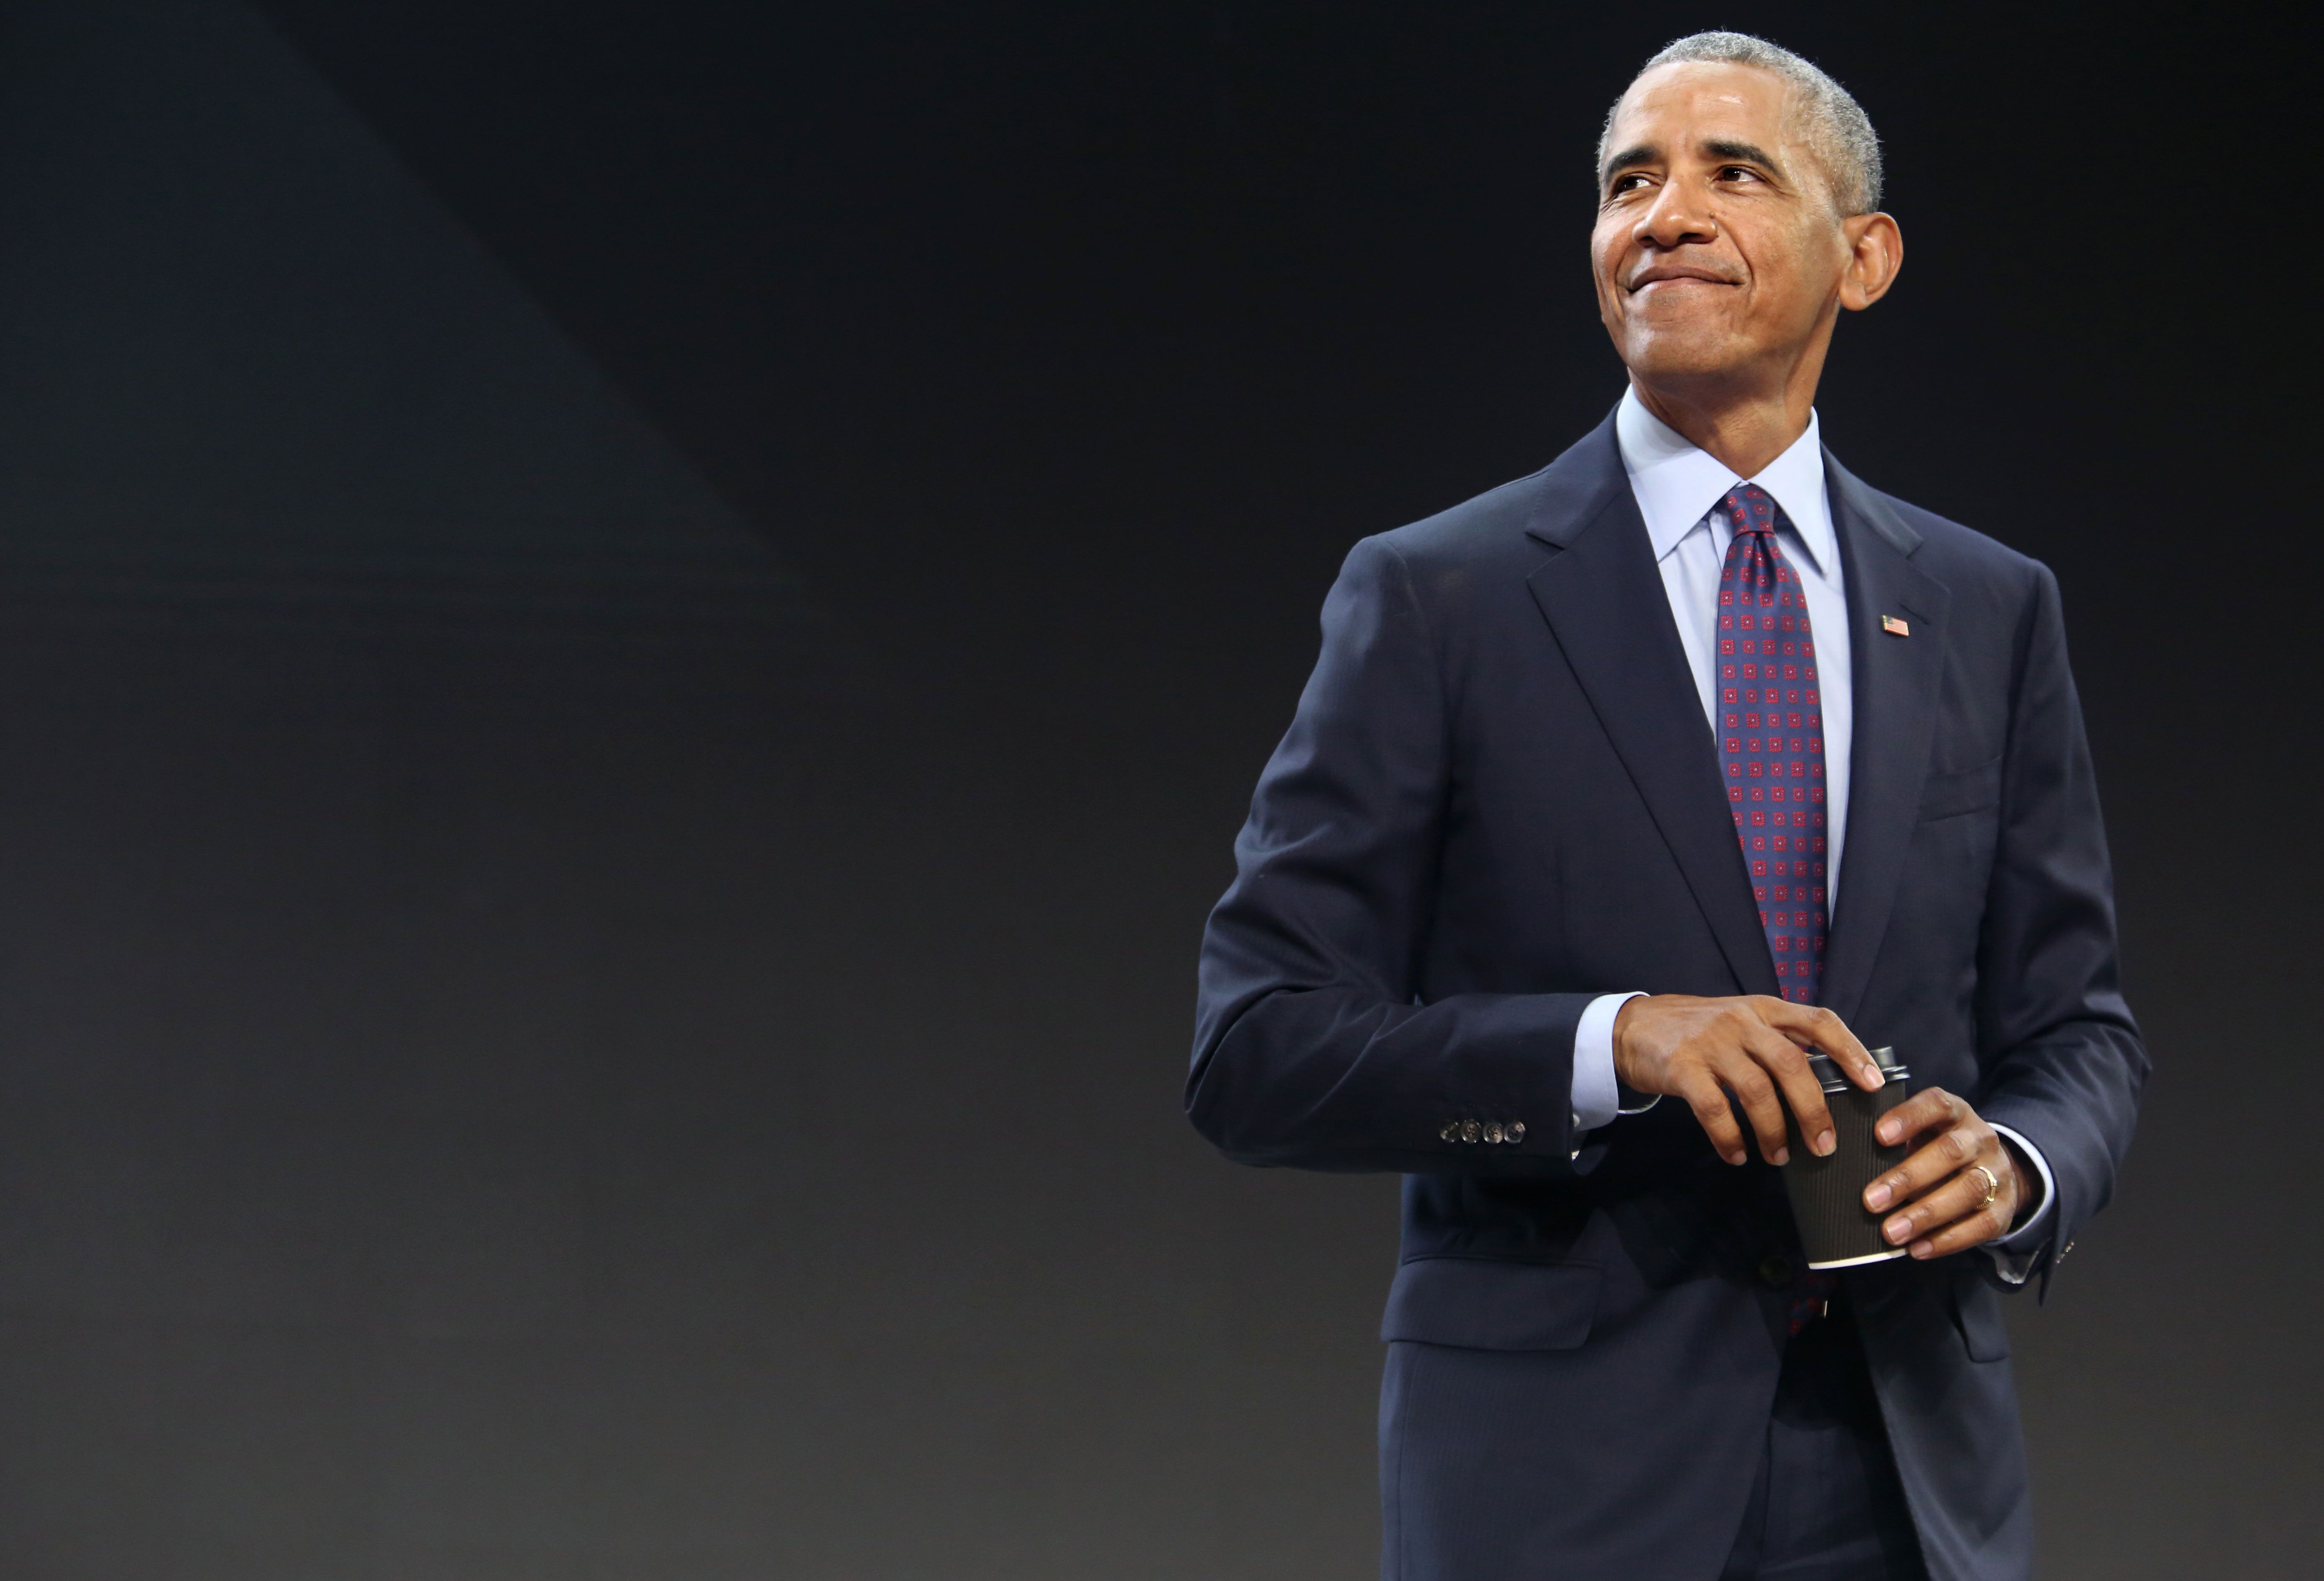 What Barack Obama Is Doing Now - Barack Obama Latest News Today